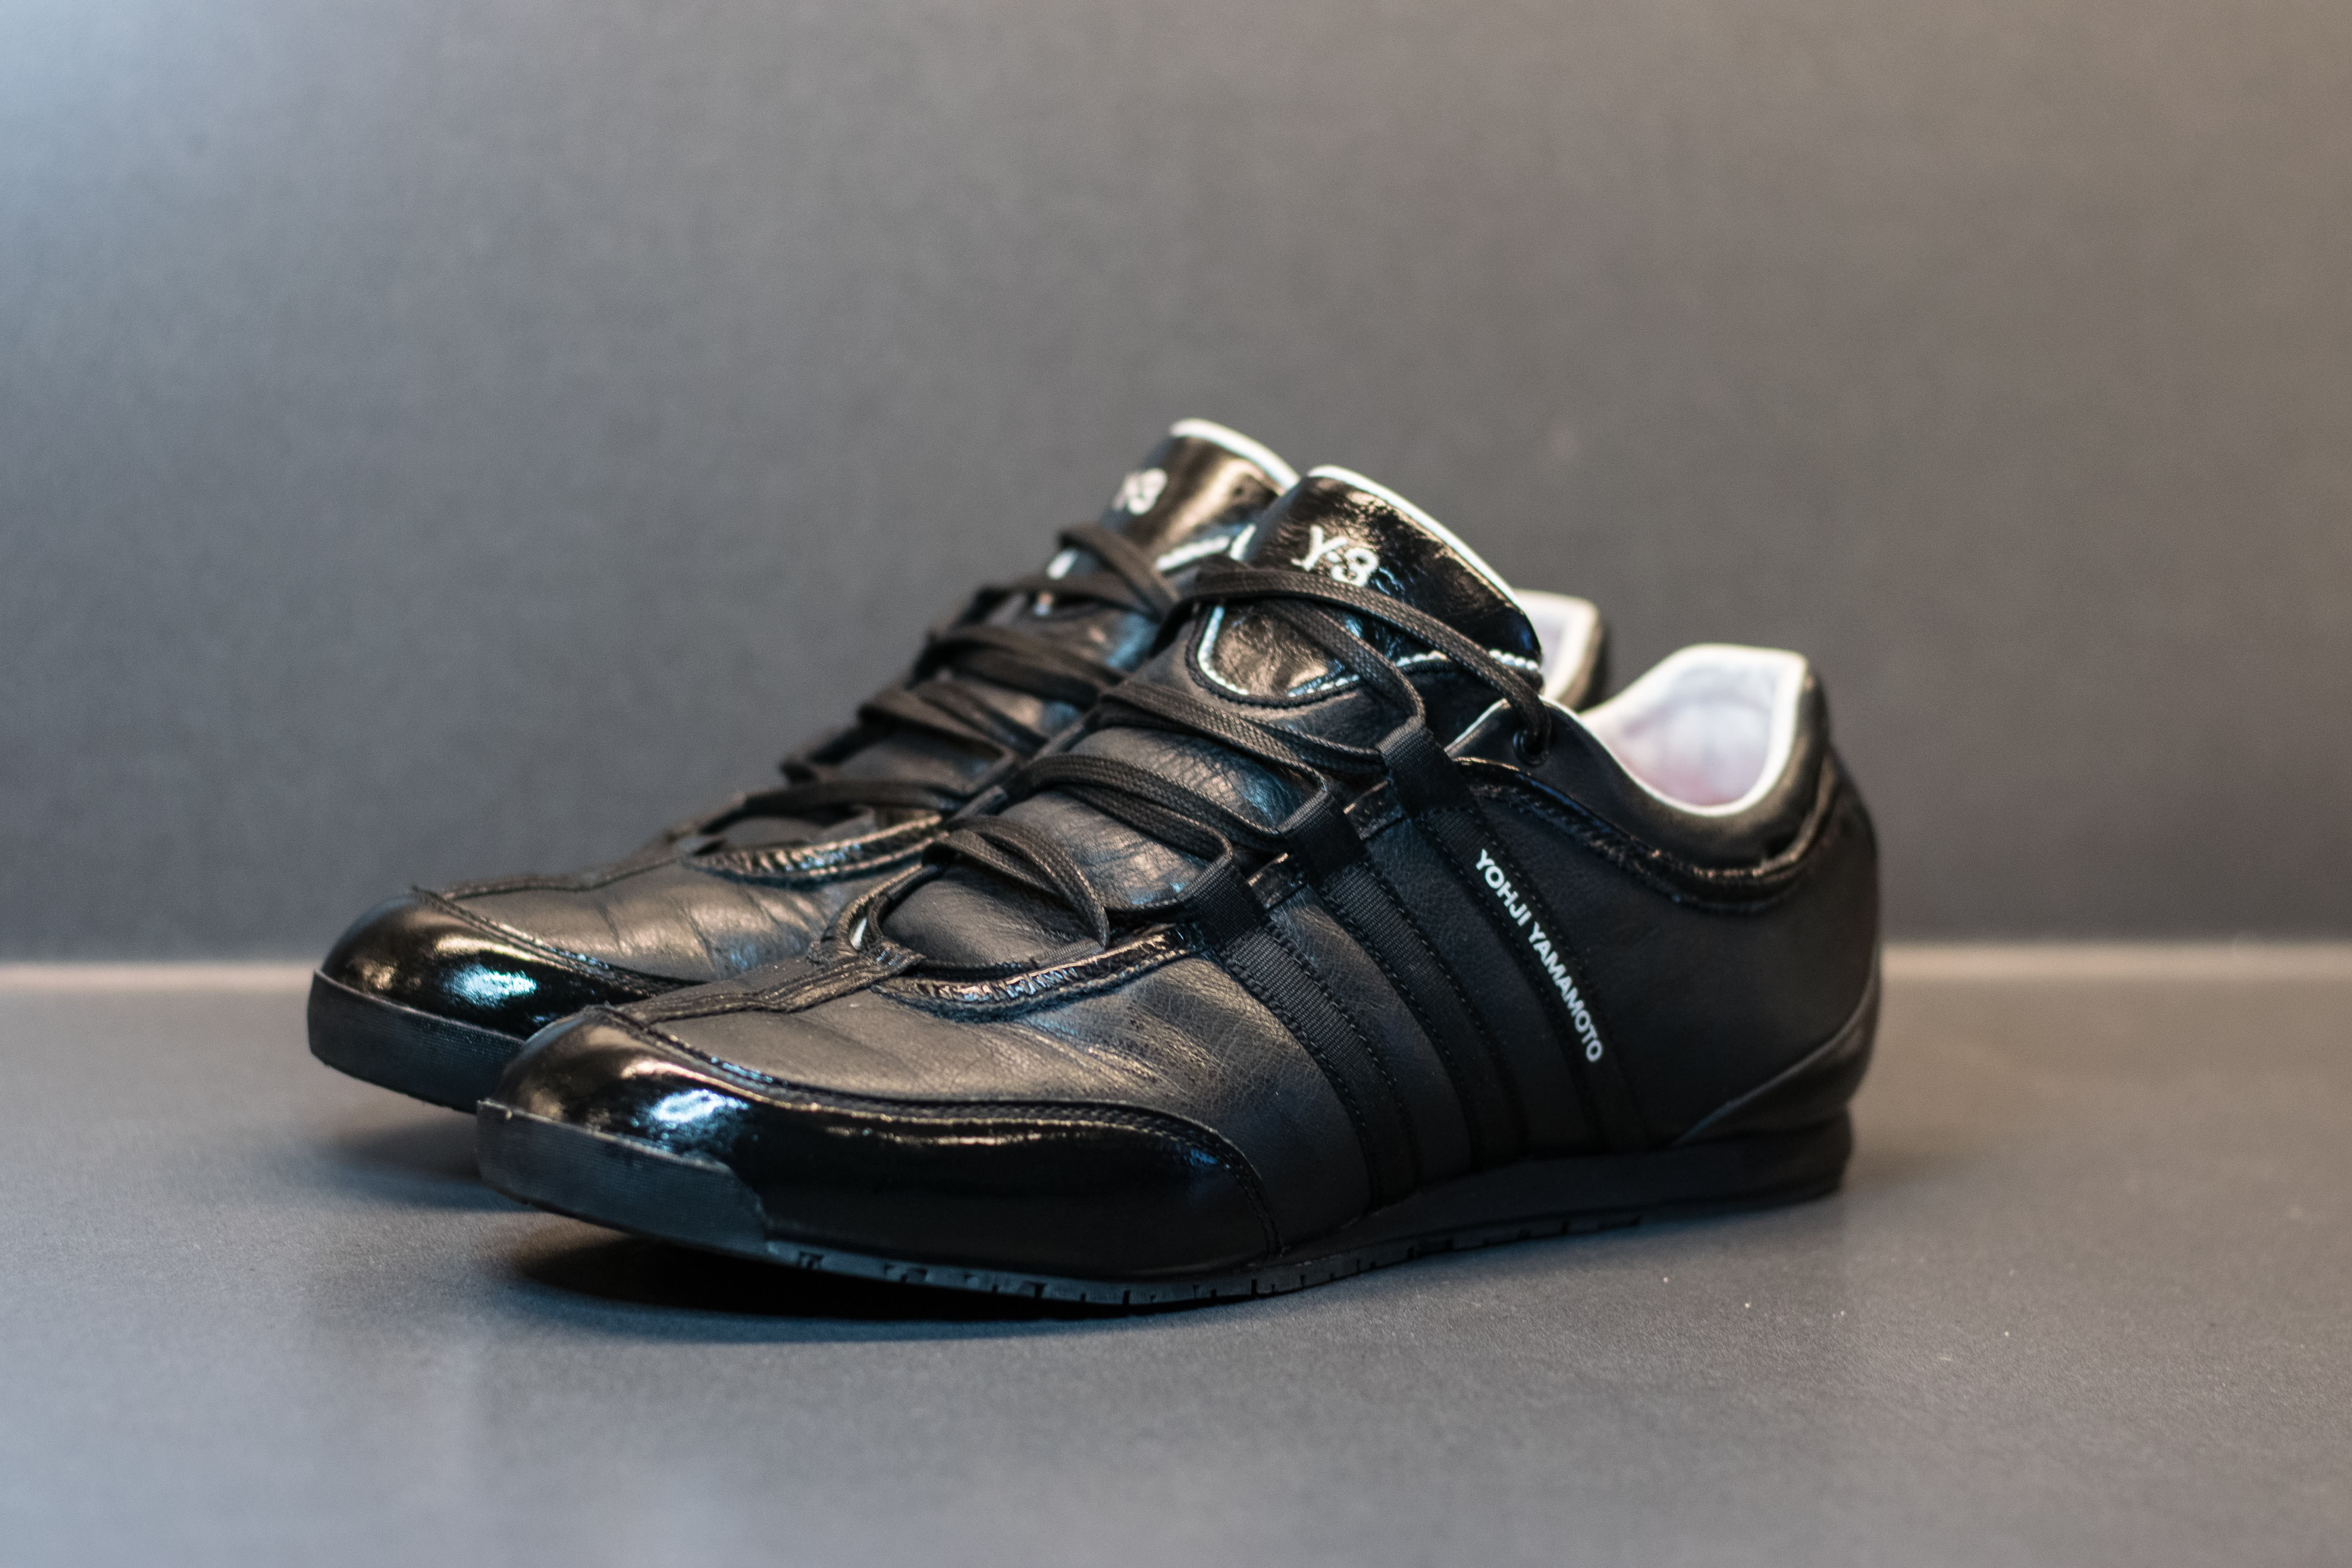 452e0e98d Adidas Y-3 Boxing Classic II Trainer Size 10 - Casual Leather Shoes ...